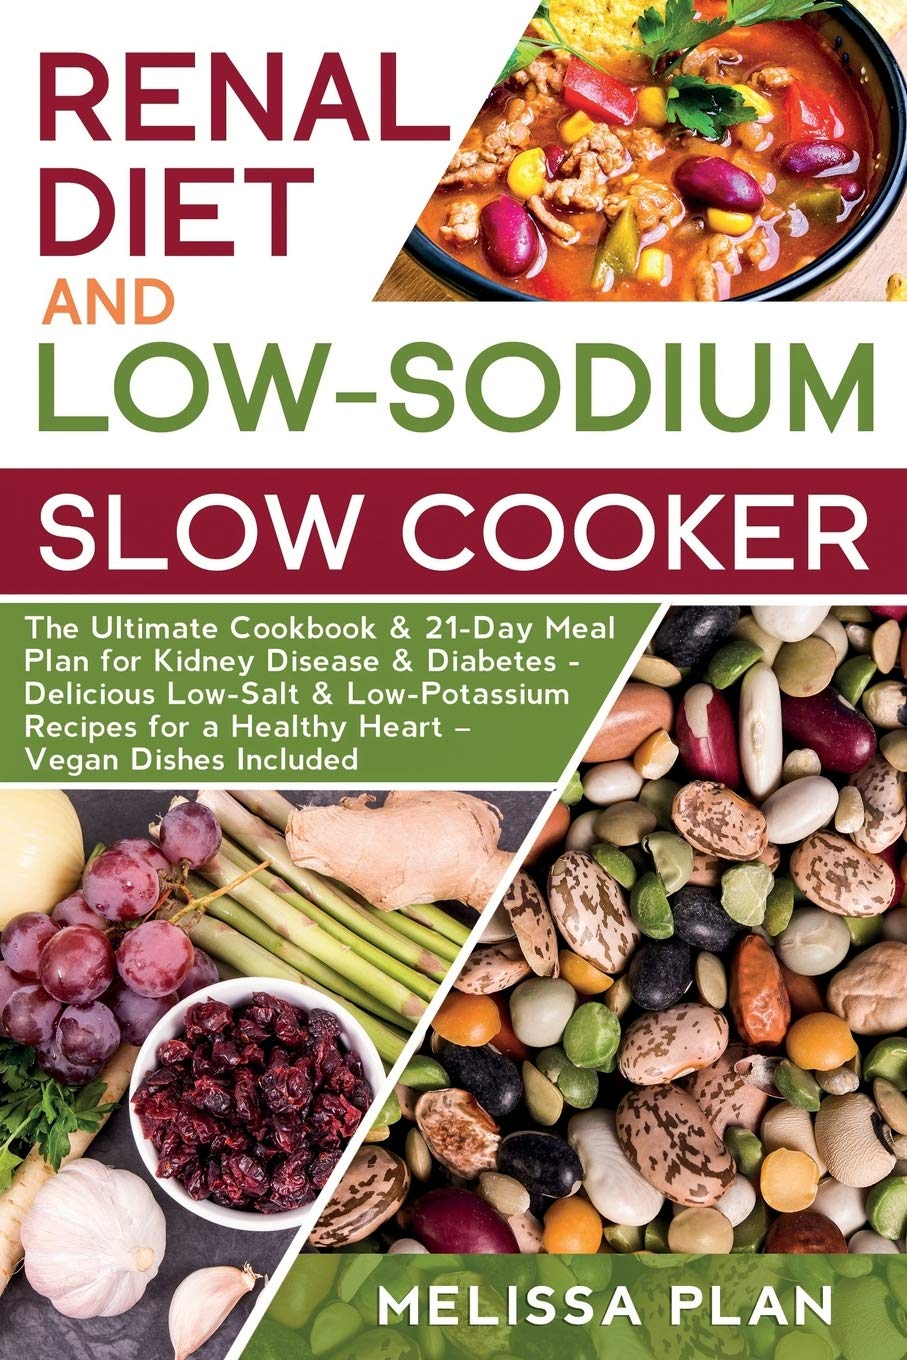 slow cooker renal diet recipes